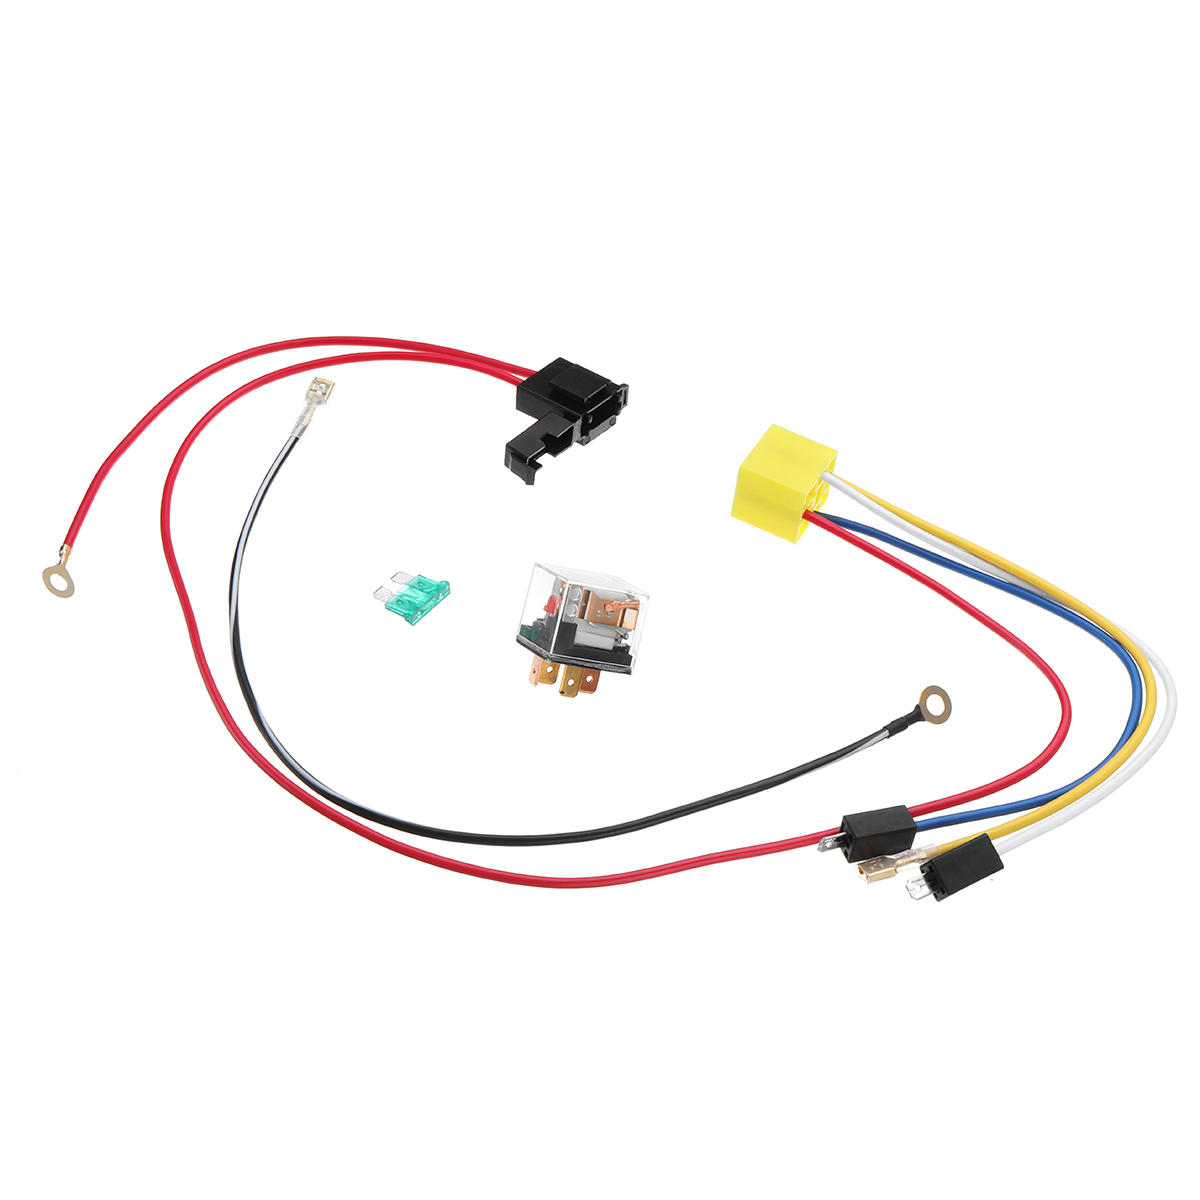 12v dual tone electric air horn wiring harness relay for car truck van  train boat universal cod